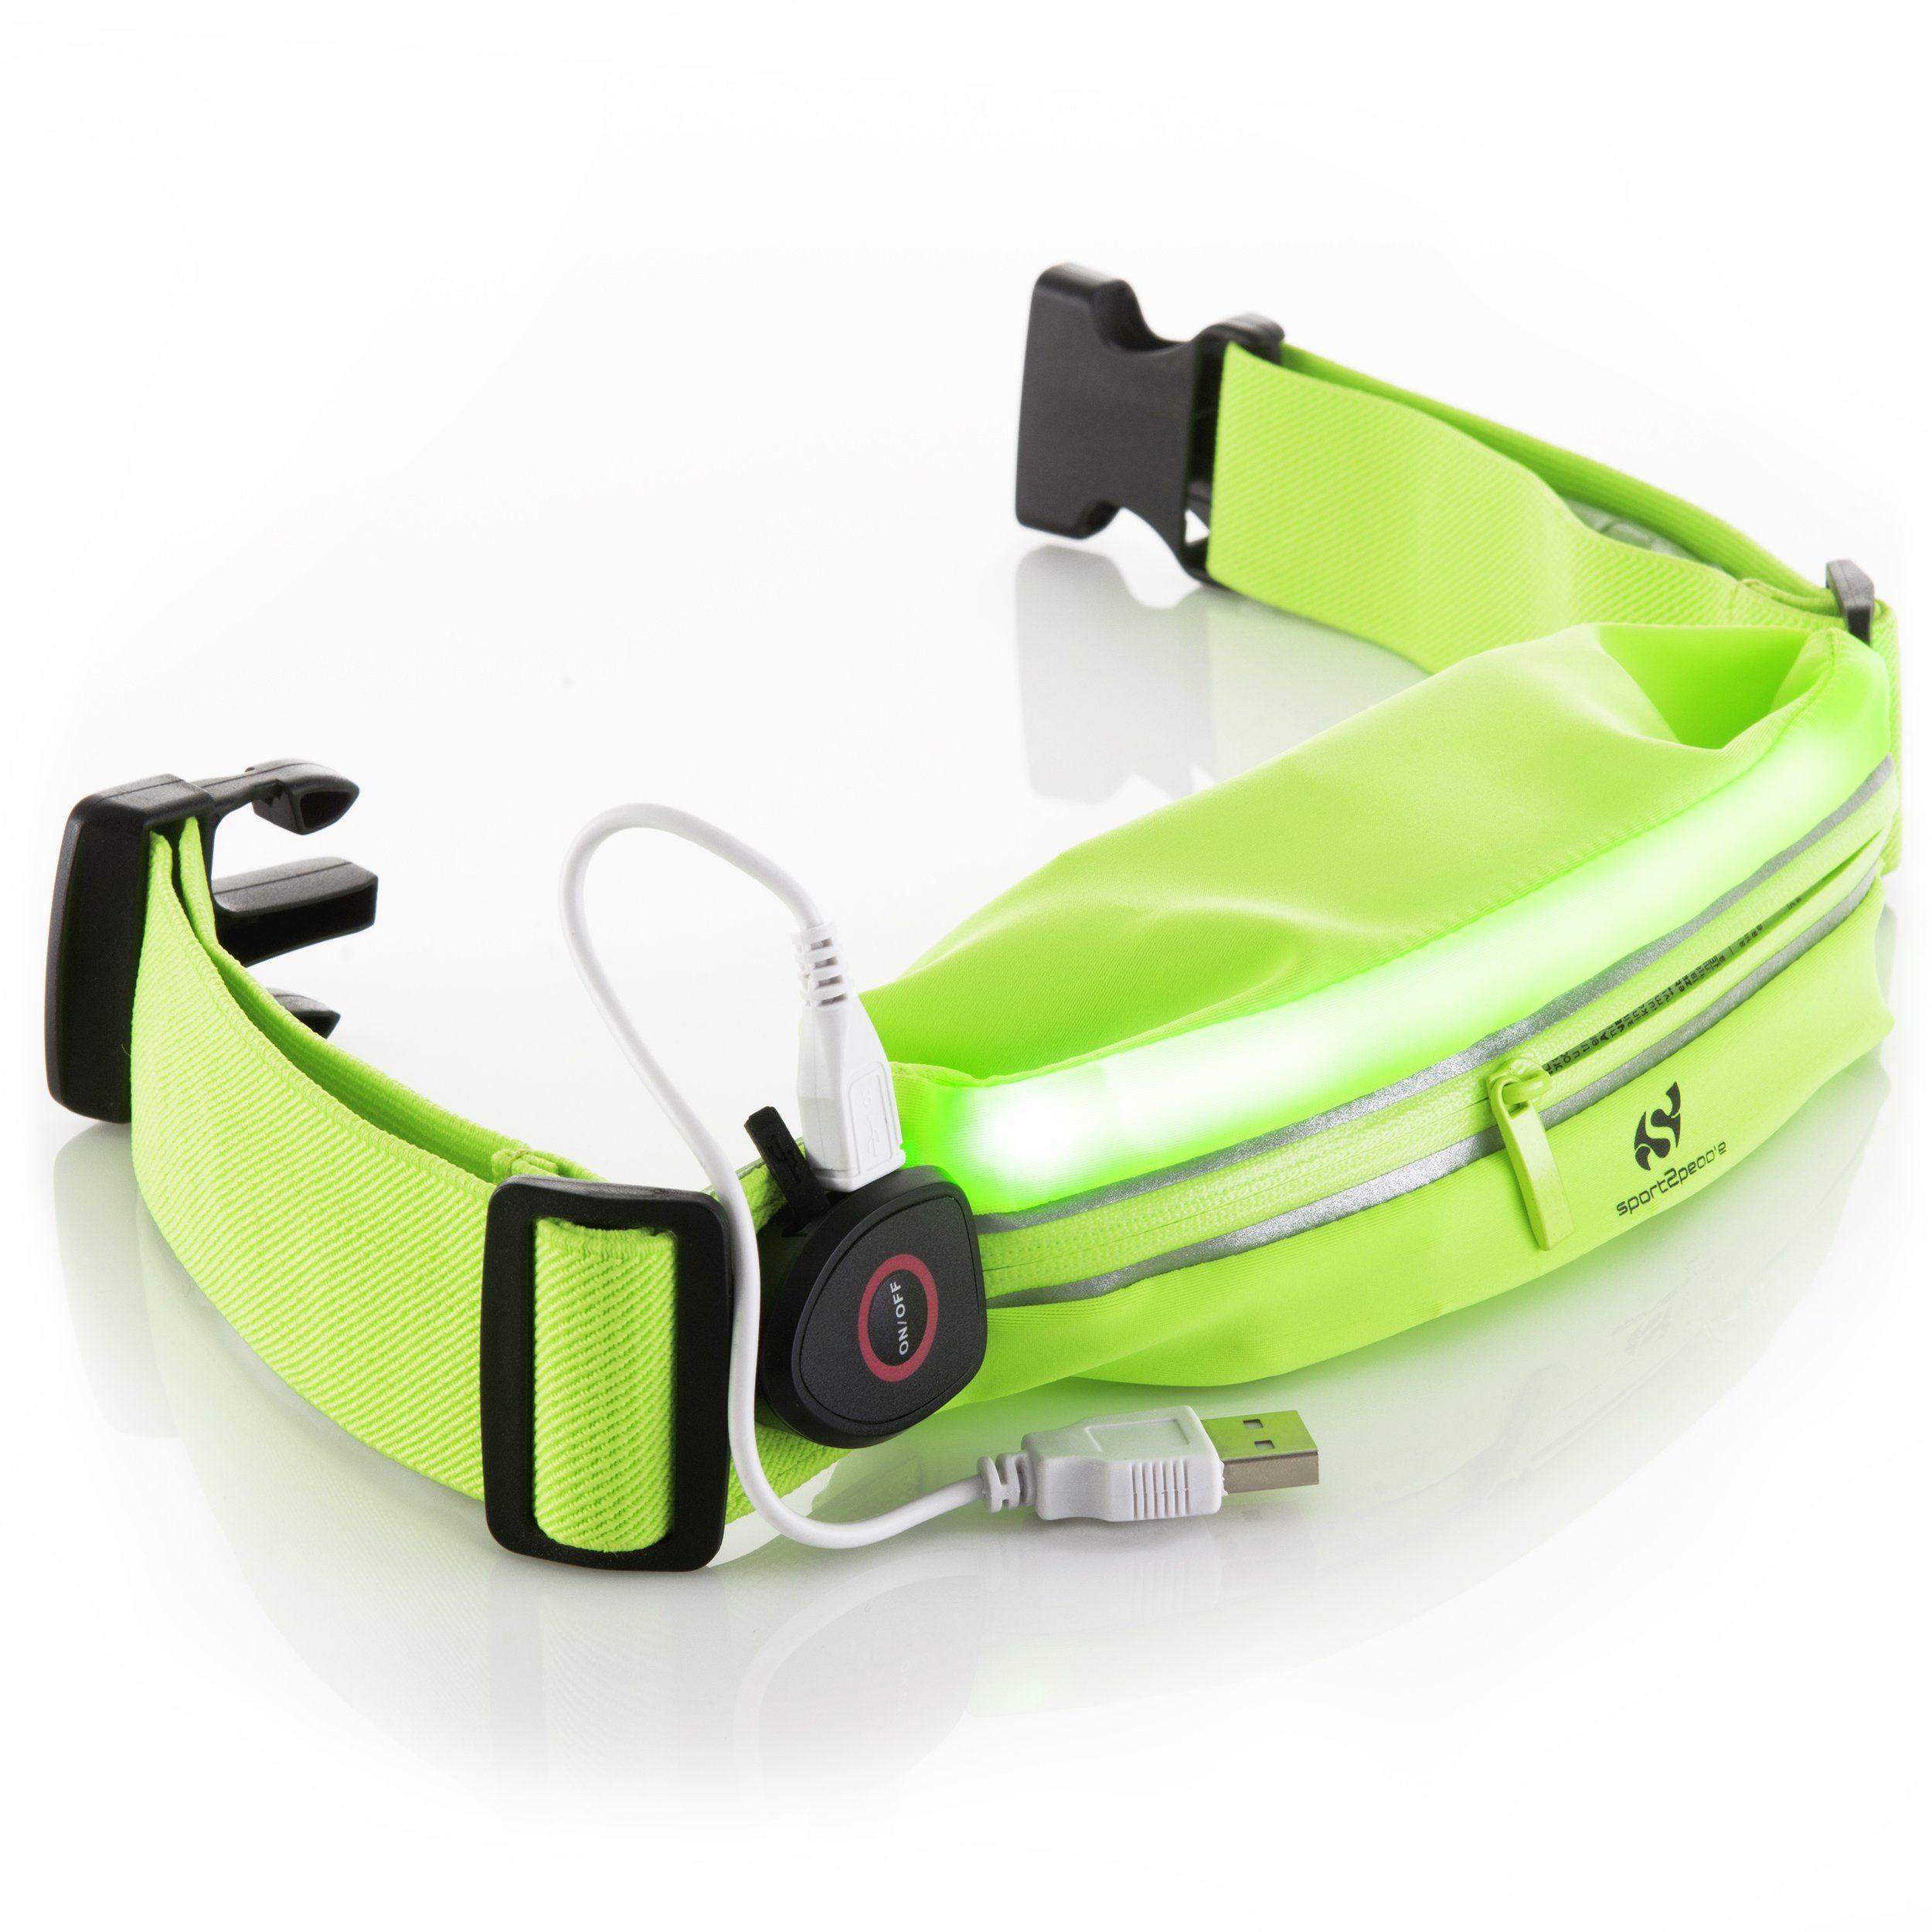 Sport2People LED Reflective Running Belt Pouch with USB Rechargeable Light - Key, iPhone X 6 7 8 Plus Cell Phone Holder for Runners - Waist Fanny Pack for Best Visibility during Walking and Cycling